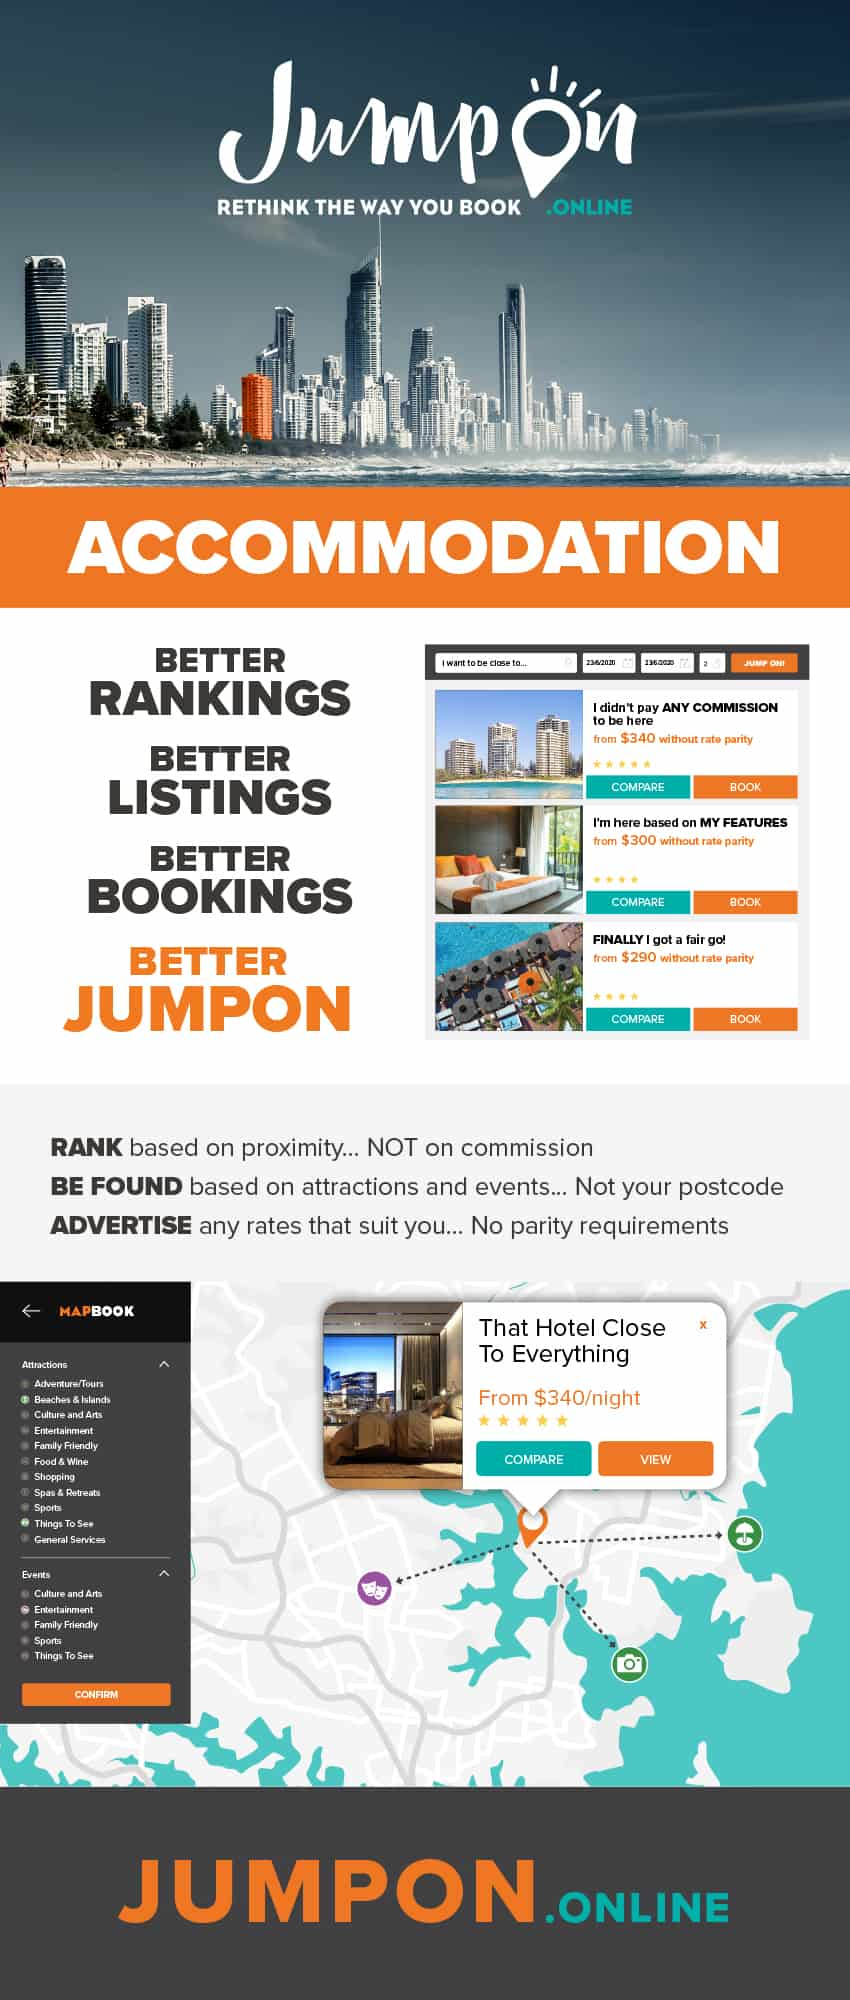 JumpOn Accommodation Pull Up Banner